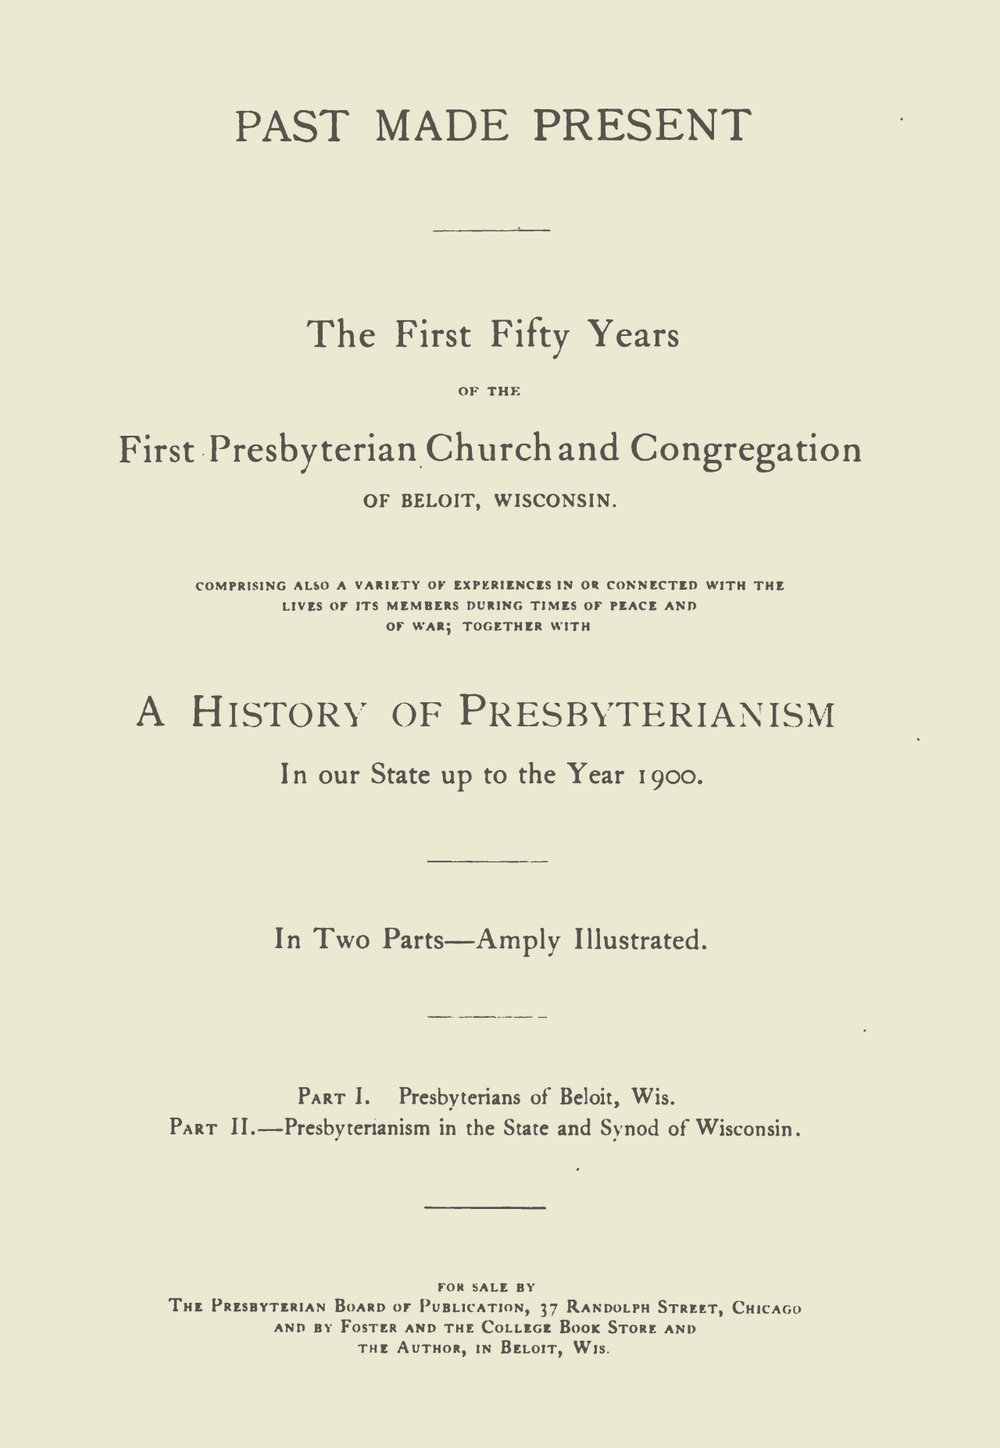 Brown, William Fiske, Past Made Present Title Page.jpg